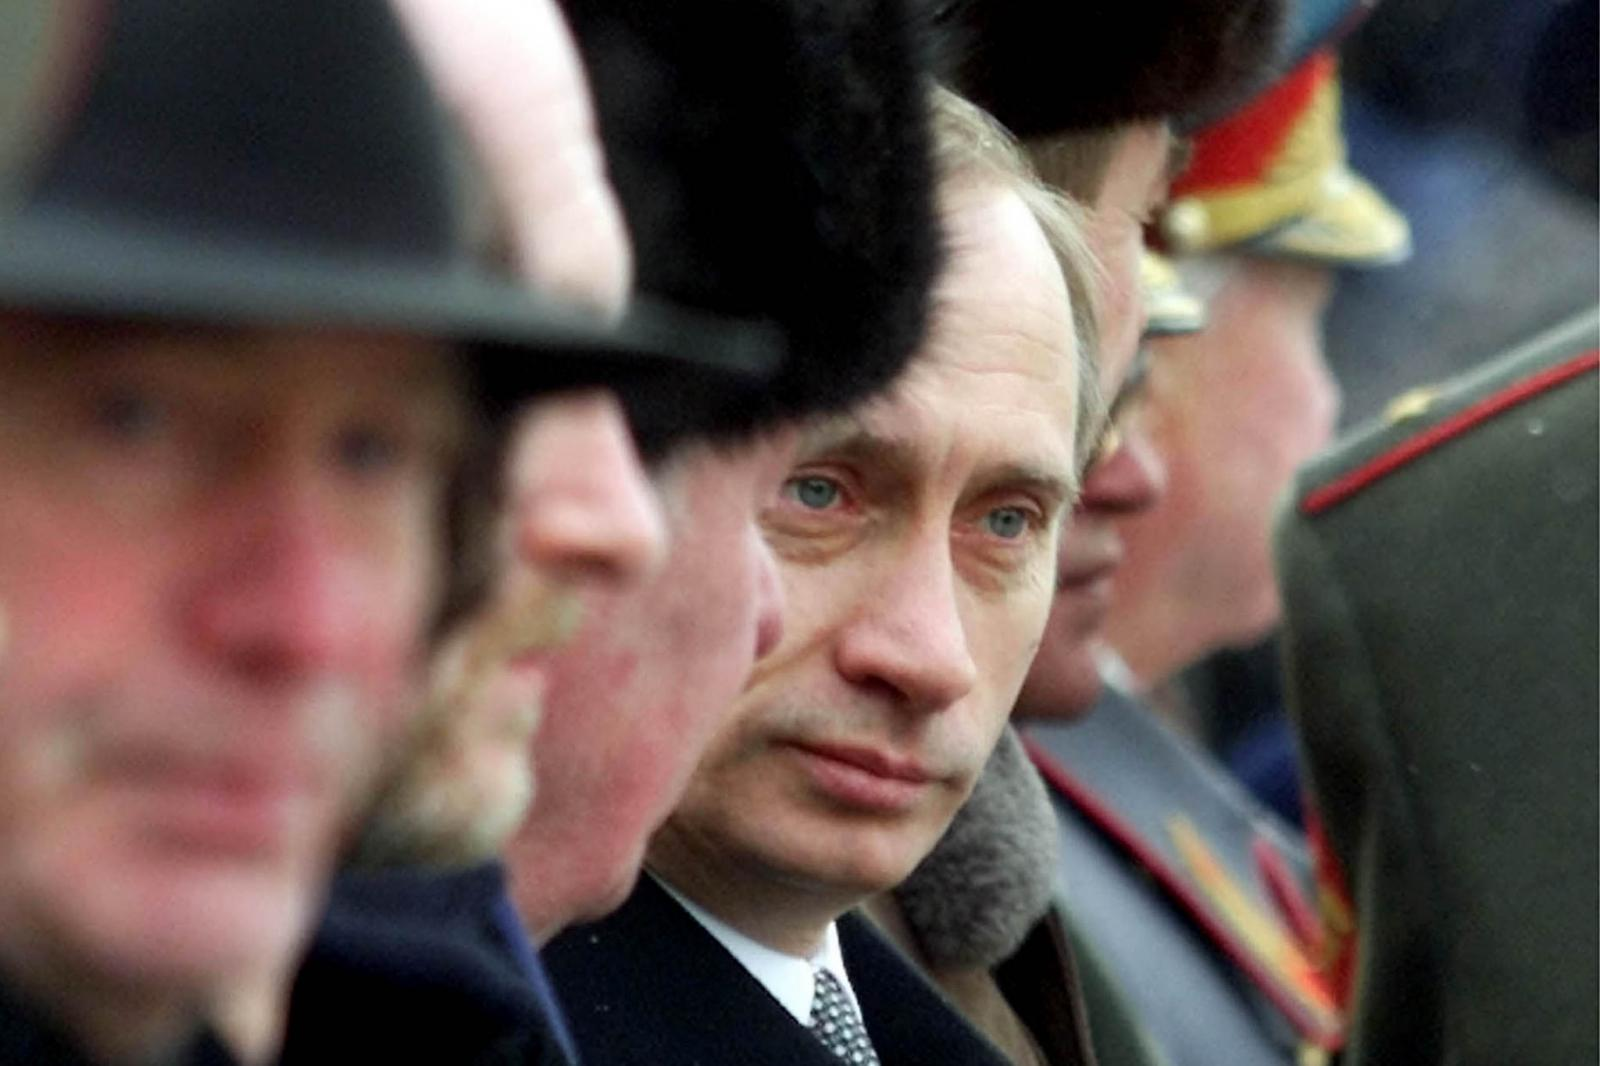 Putin at a military ceremony in Moscow, February 2000